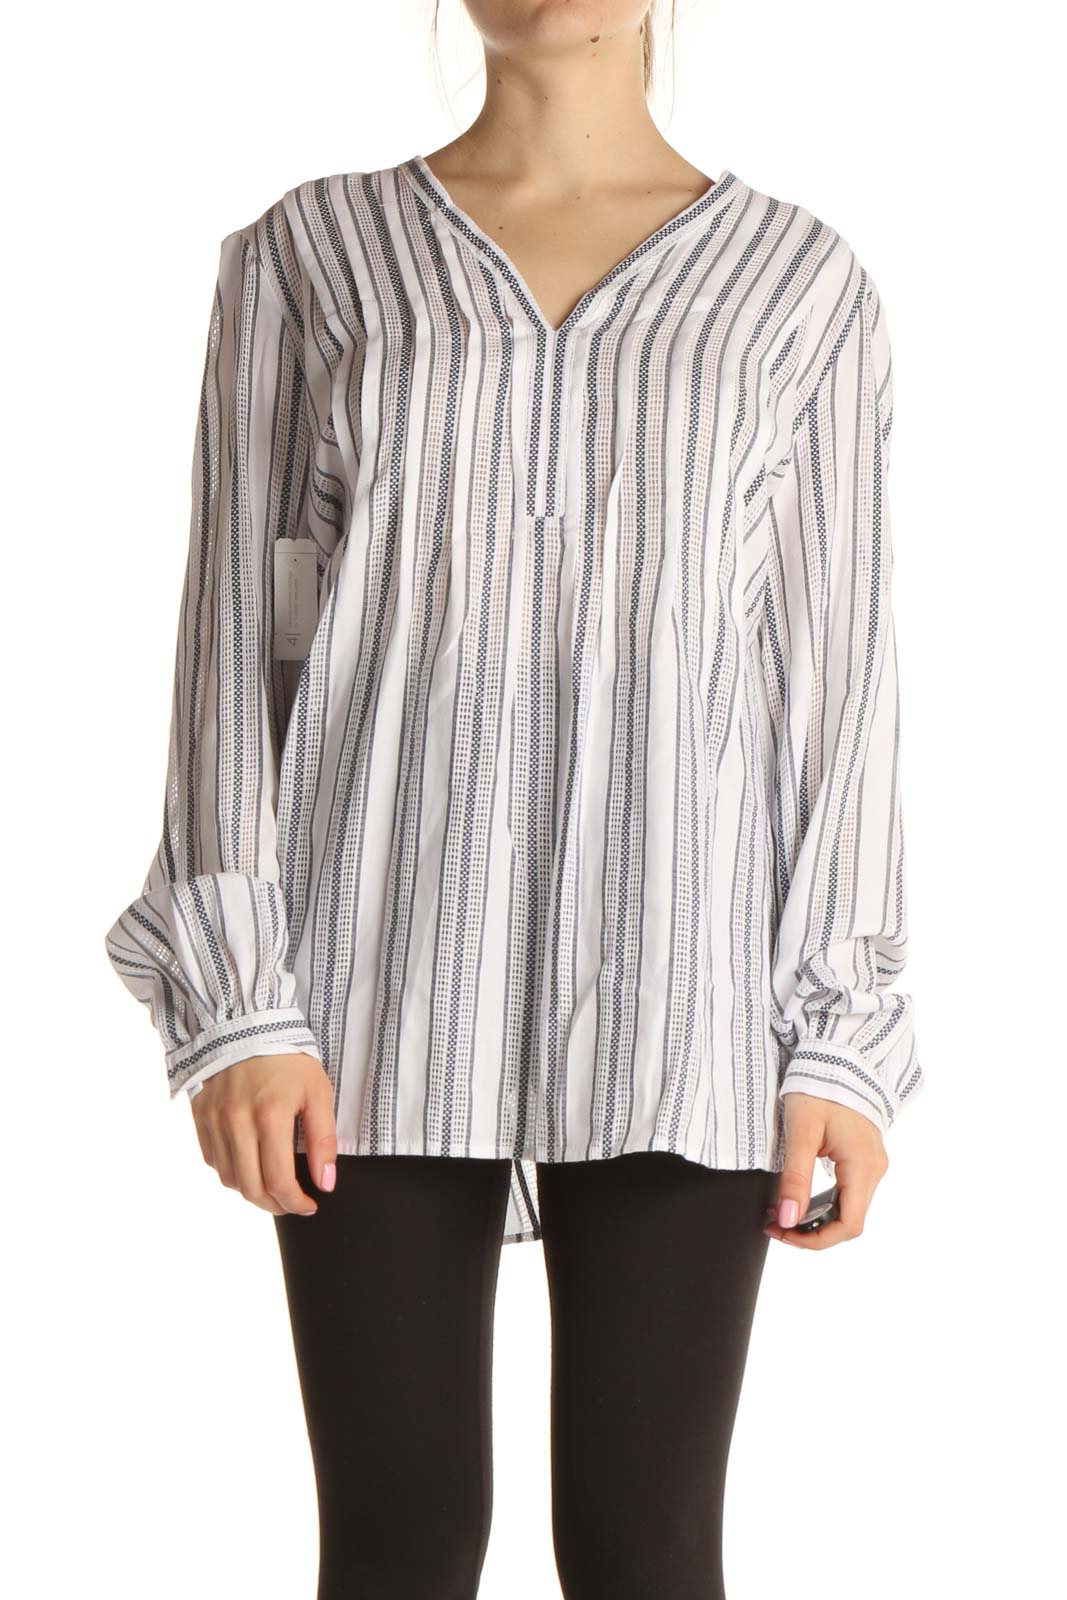 White Striped Brunch Blouse Front